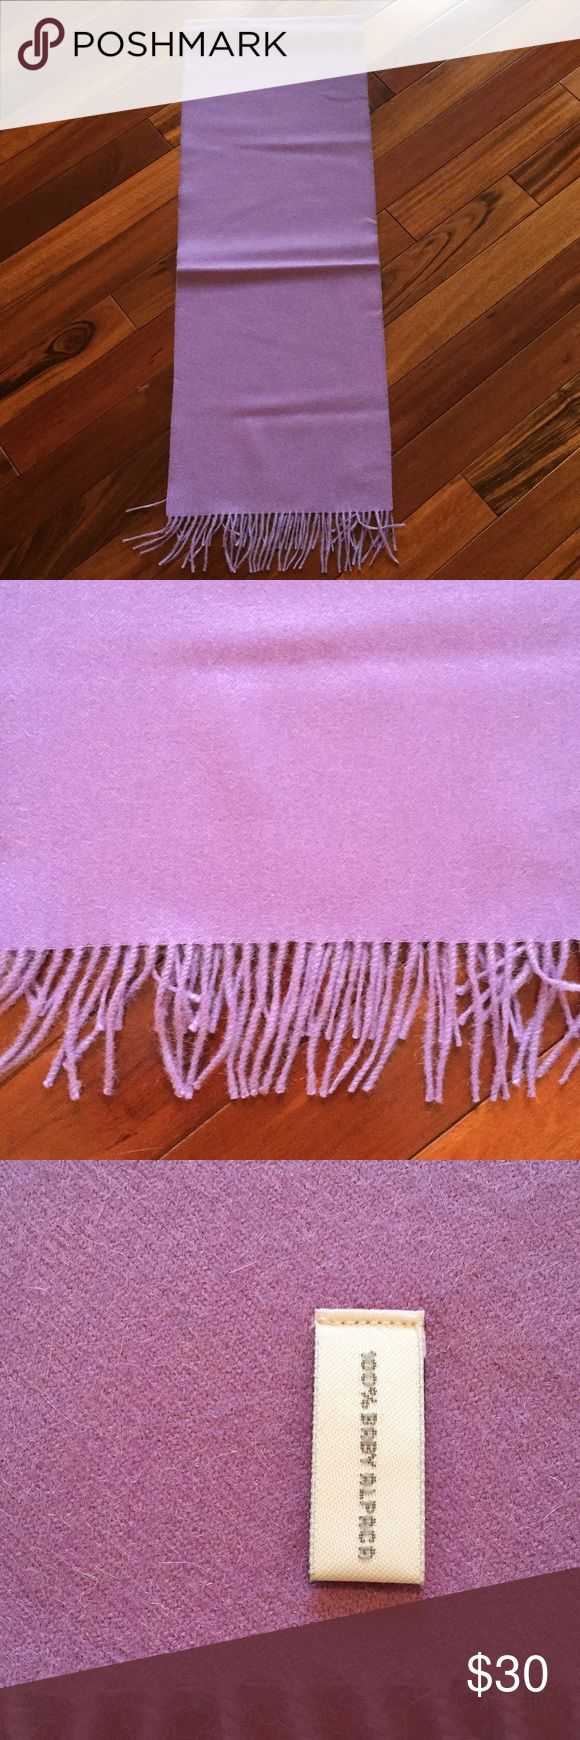 """100% Baby Alpaca scarf 🧣 Beautiful lilac color Baby Alpaca scarf 🧣. Never used. About 67""""L 12"""" W. Made in Peru. Excellent perfect condition. Accessories Scarves & Wraps"""